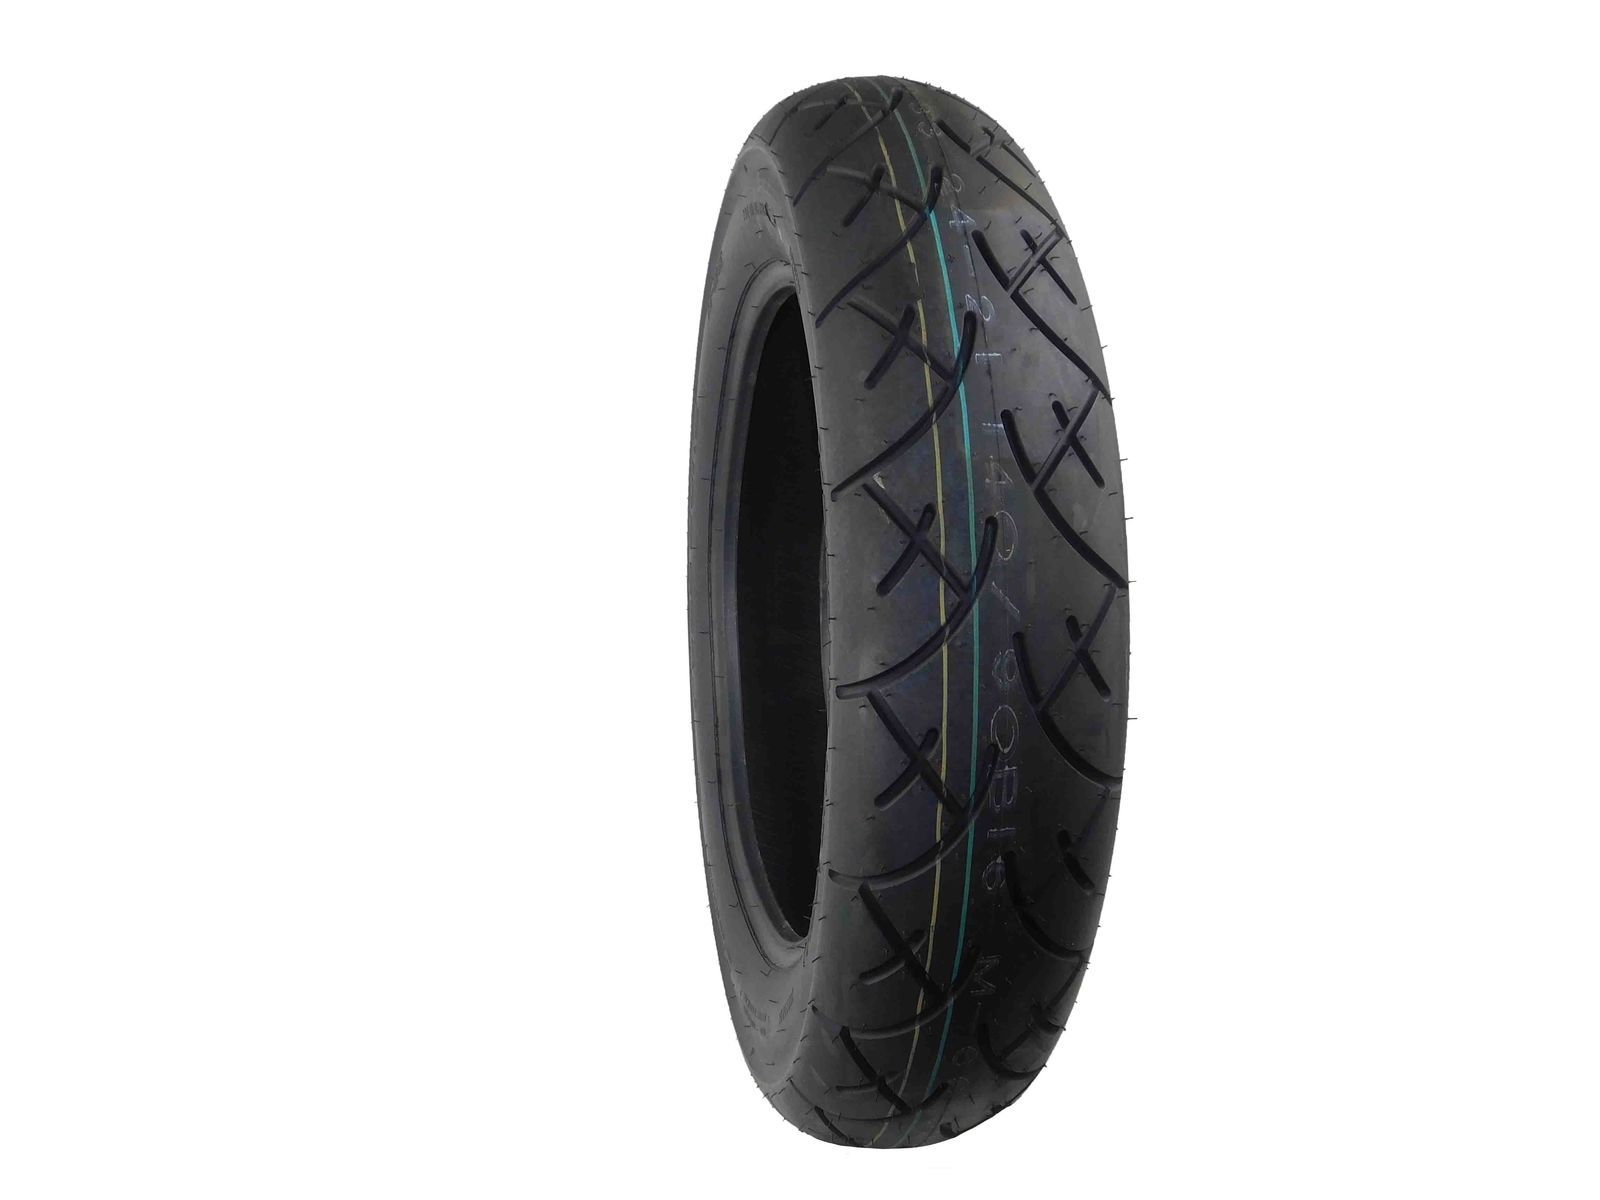 Full-Bore-120-70-21-Front-140-90-16-Tour-King-Cruiser-Motorcycle-Tires-image-4